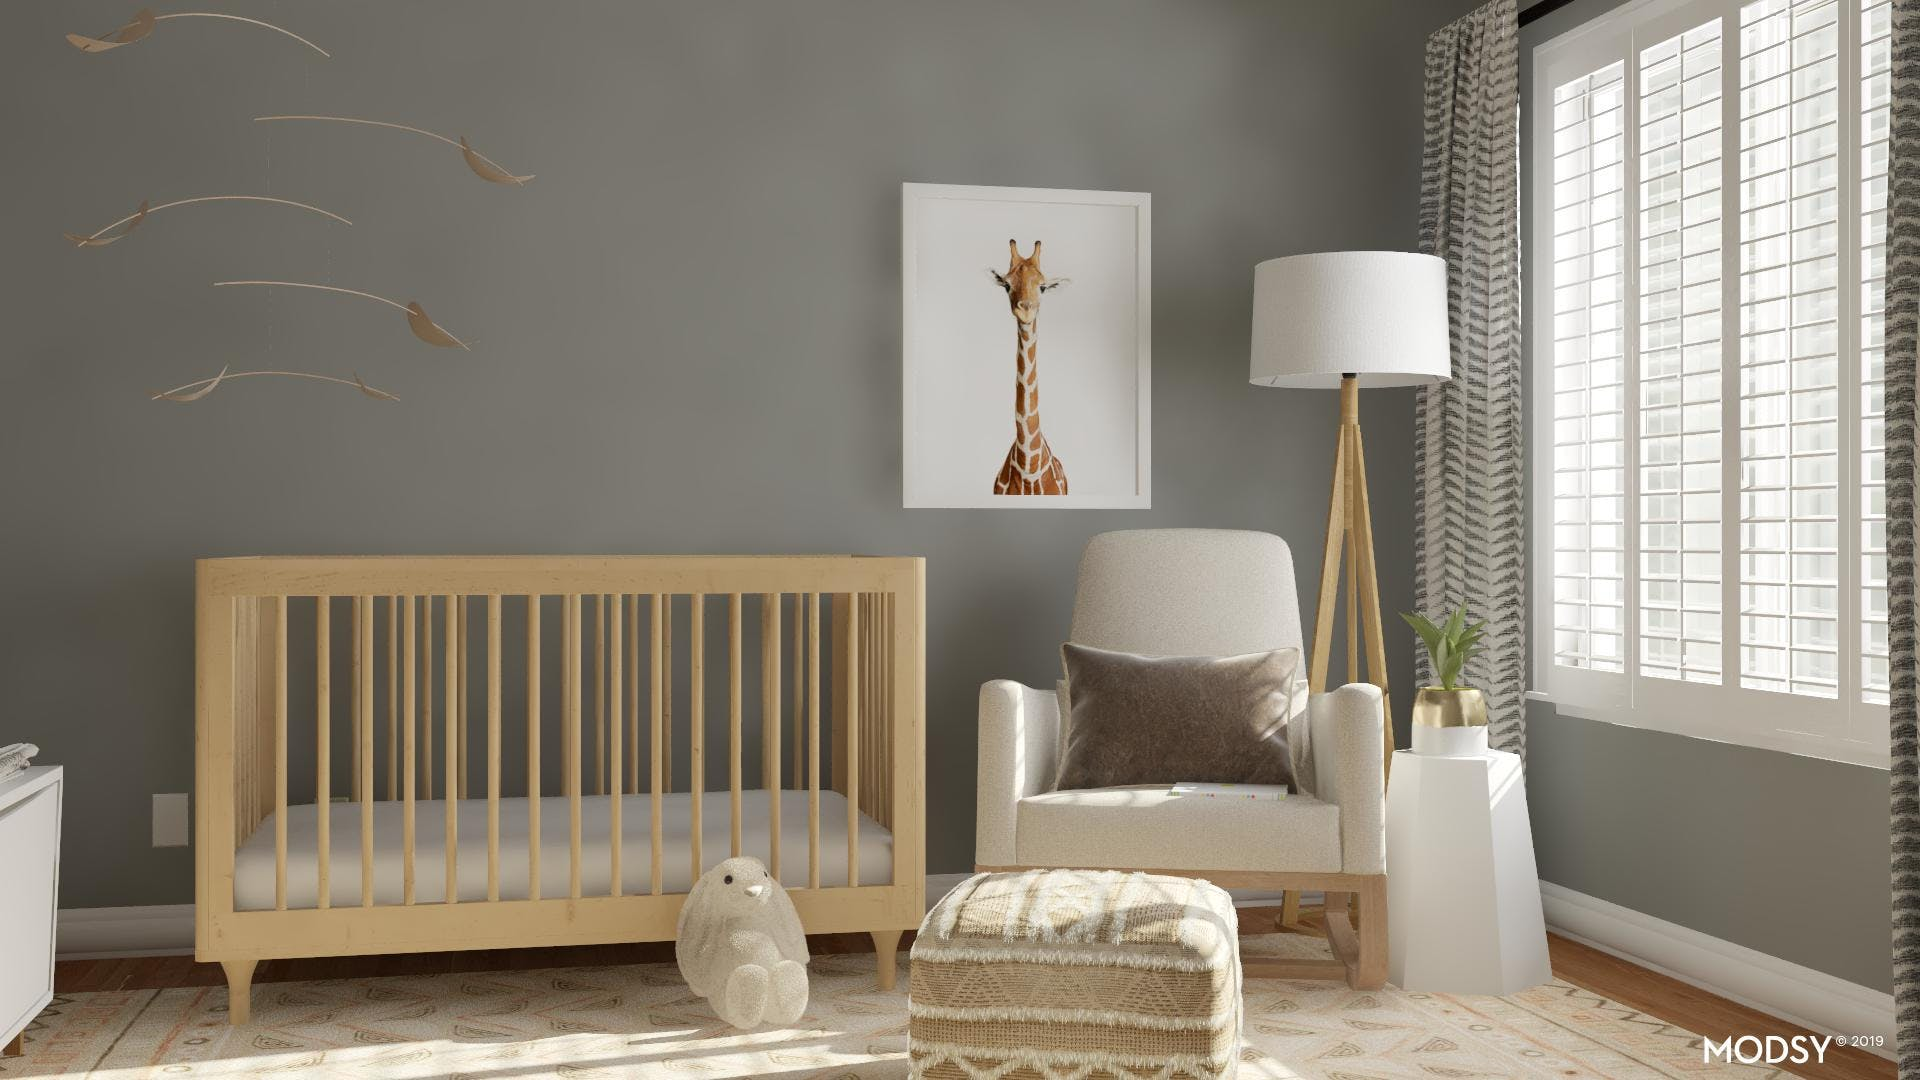 A Neutral Nursery with Warmth